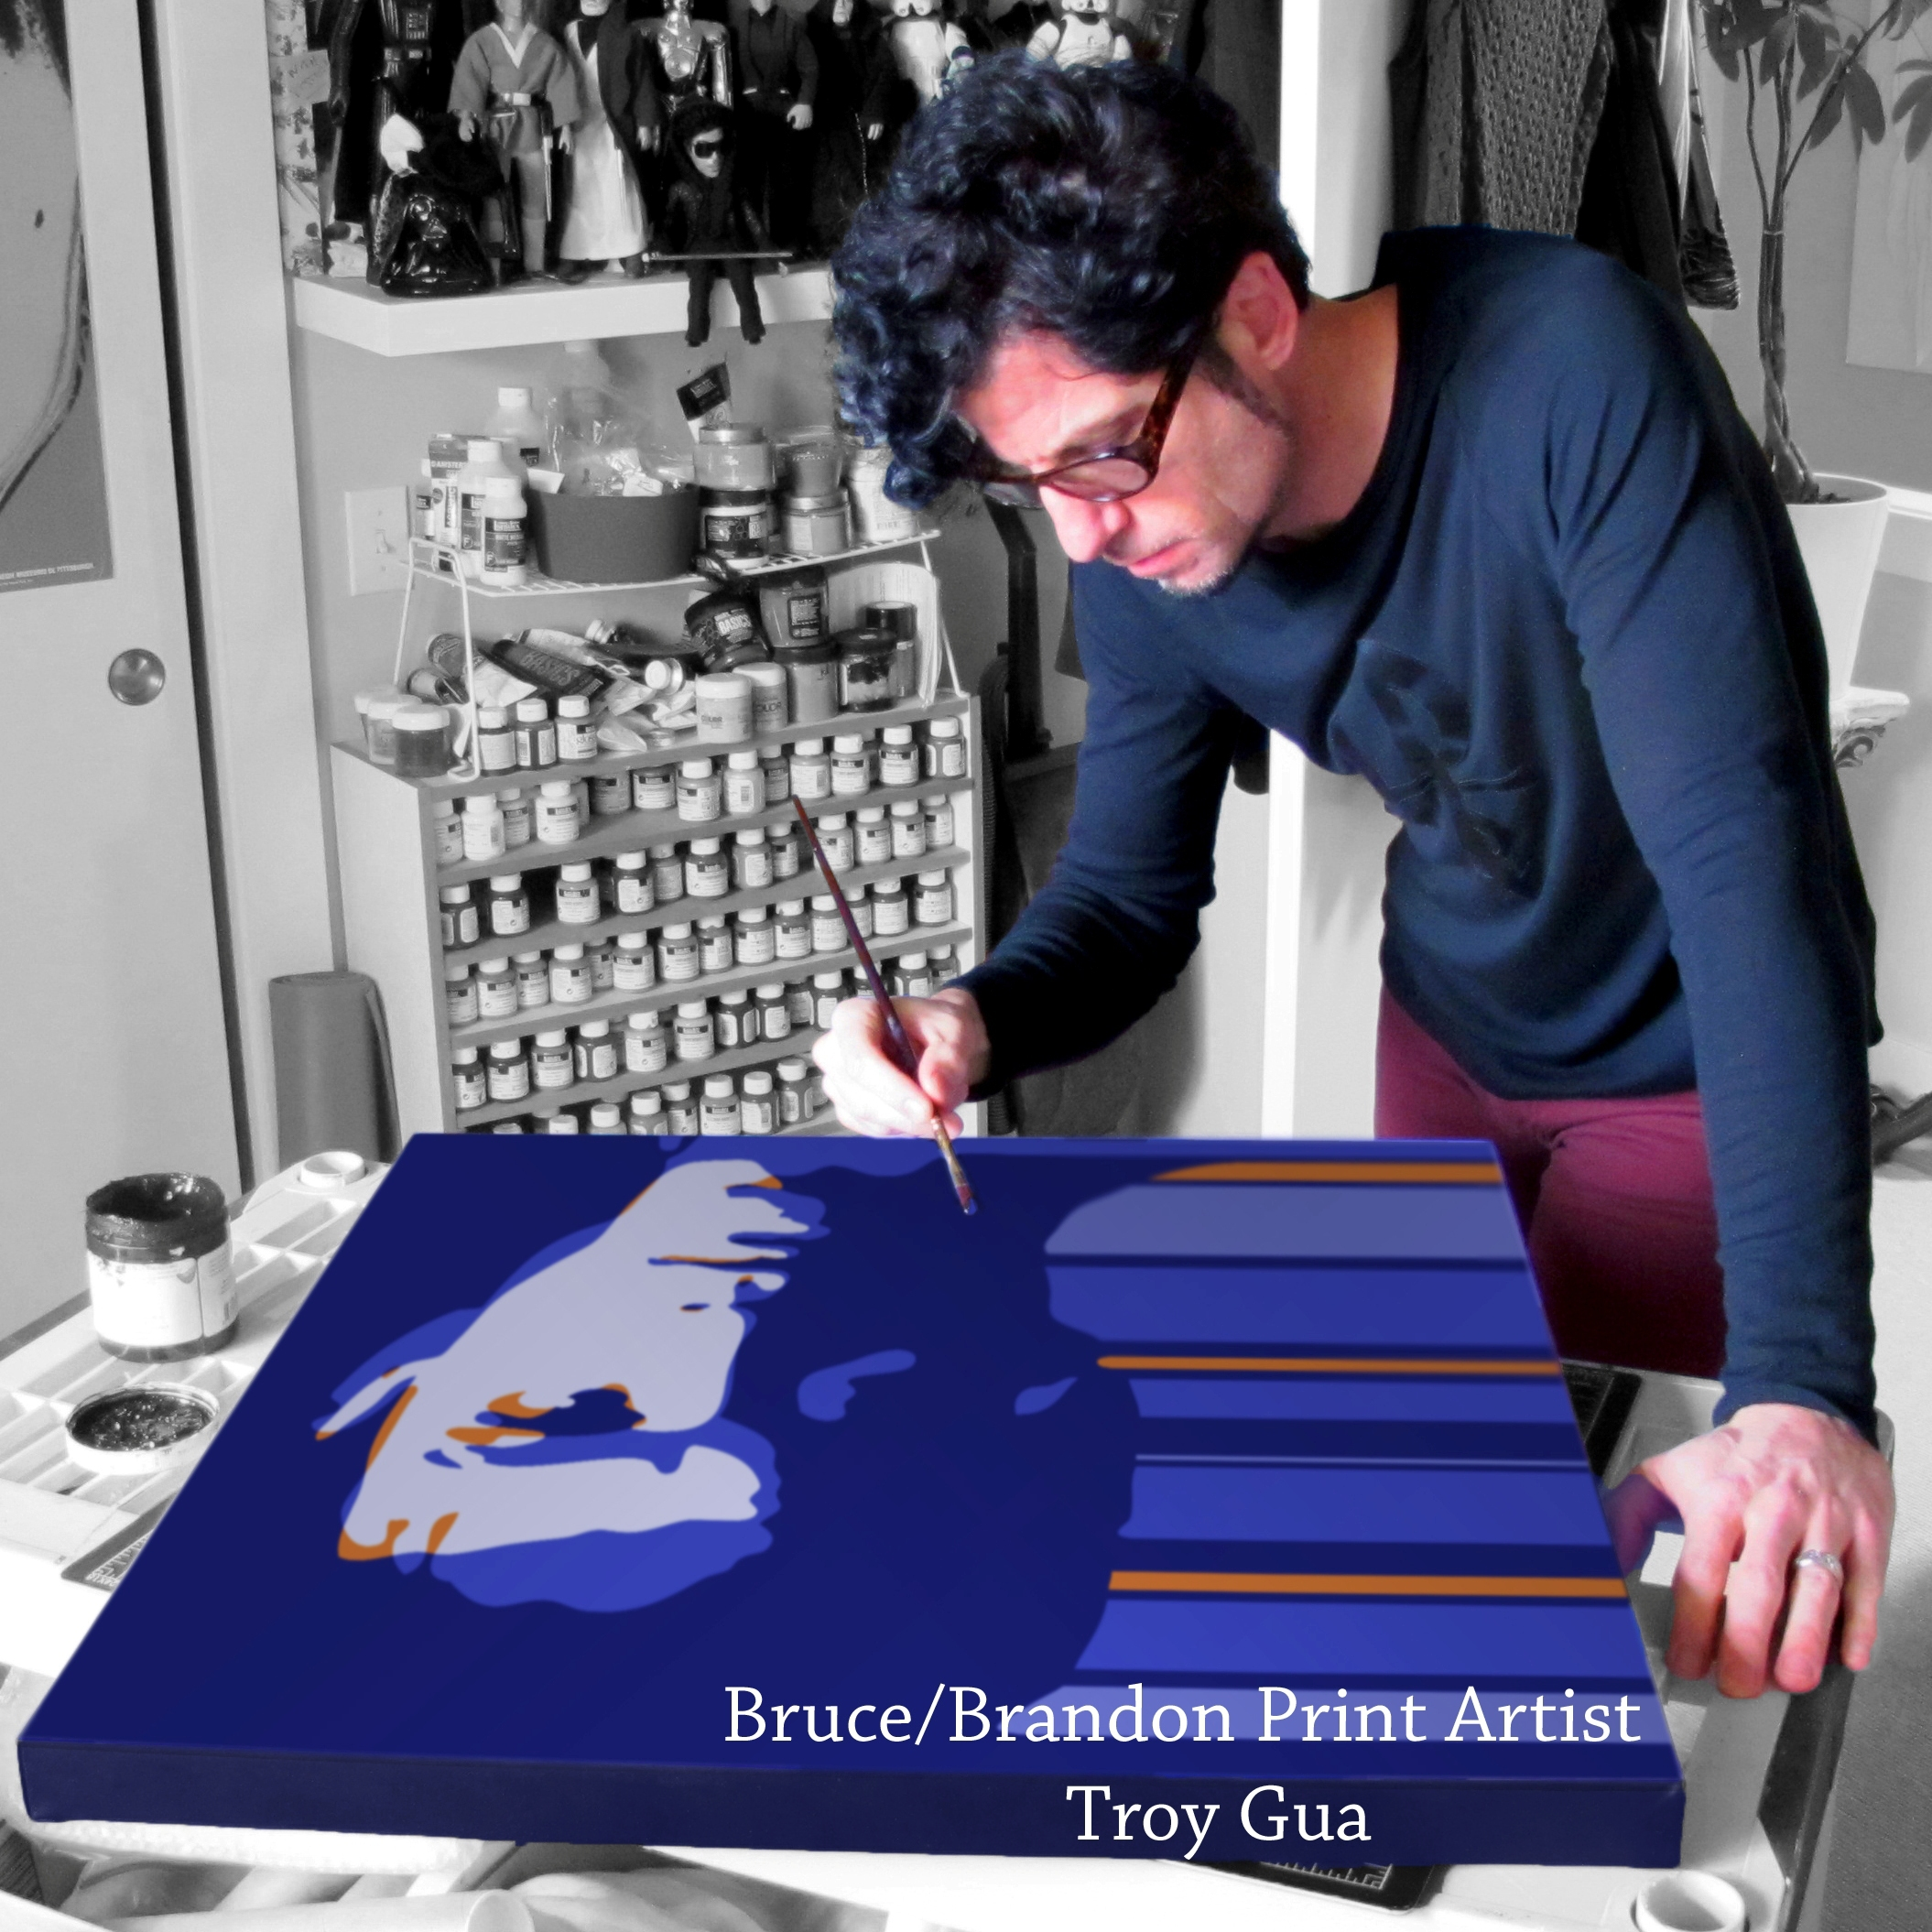 The Bruce/Brandon Fine Art Print by Troy Gua (LTD Edition of 250)